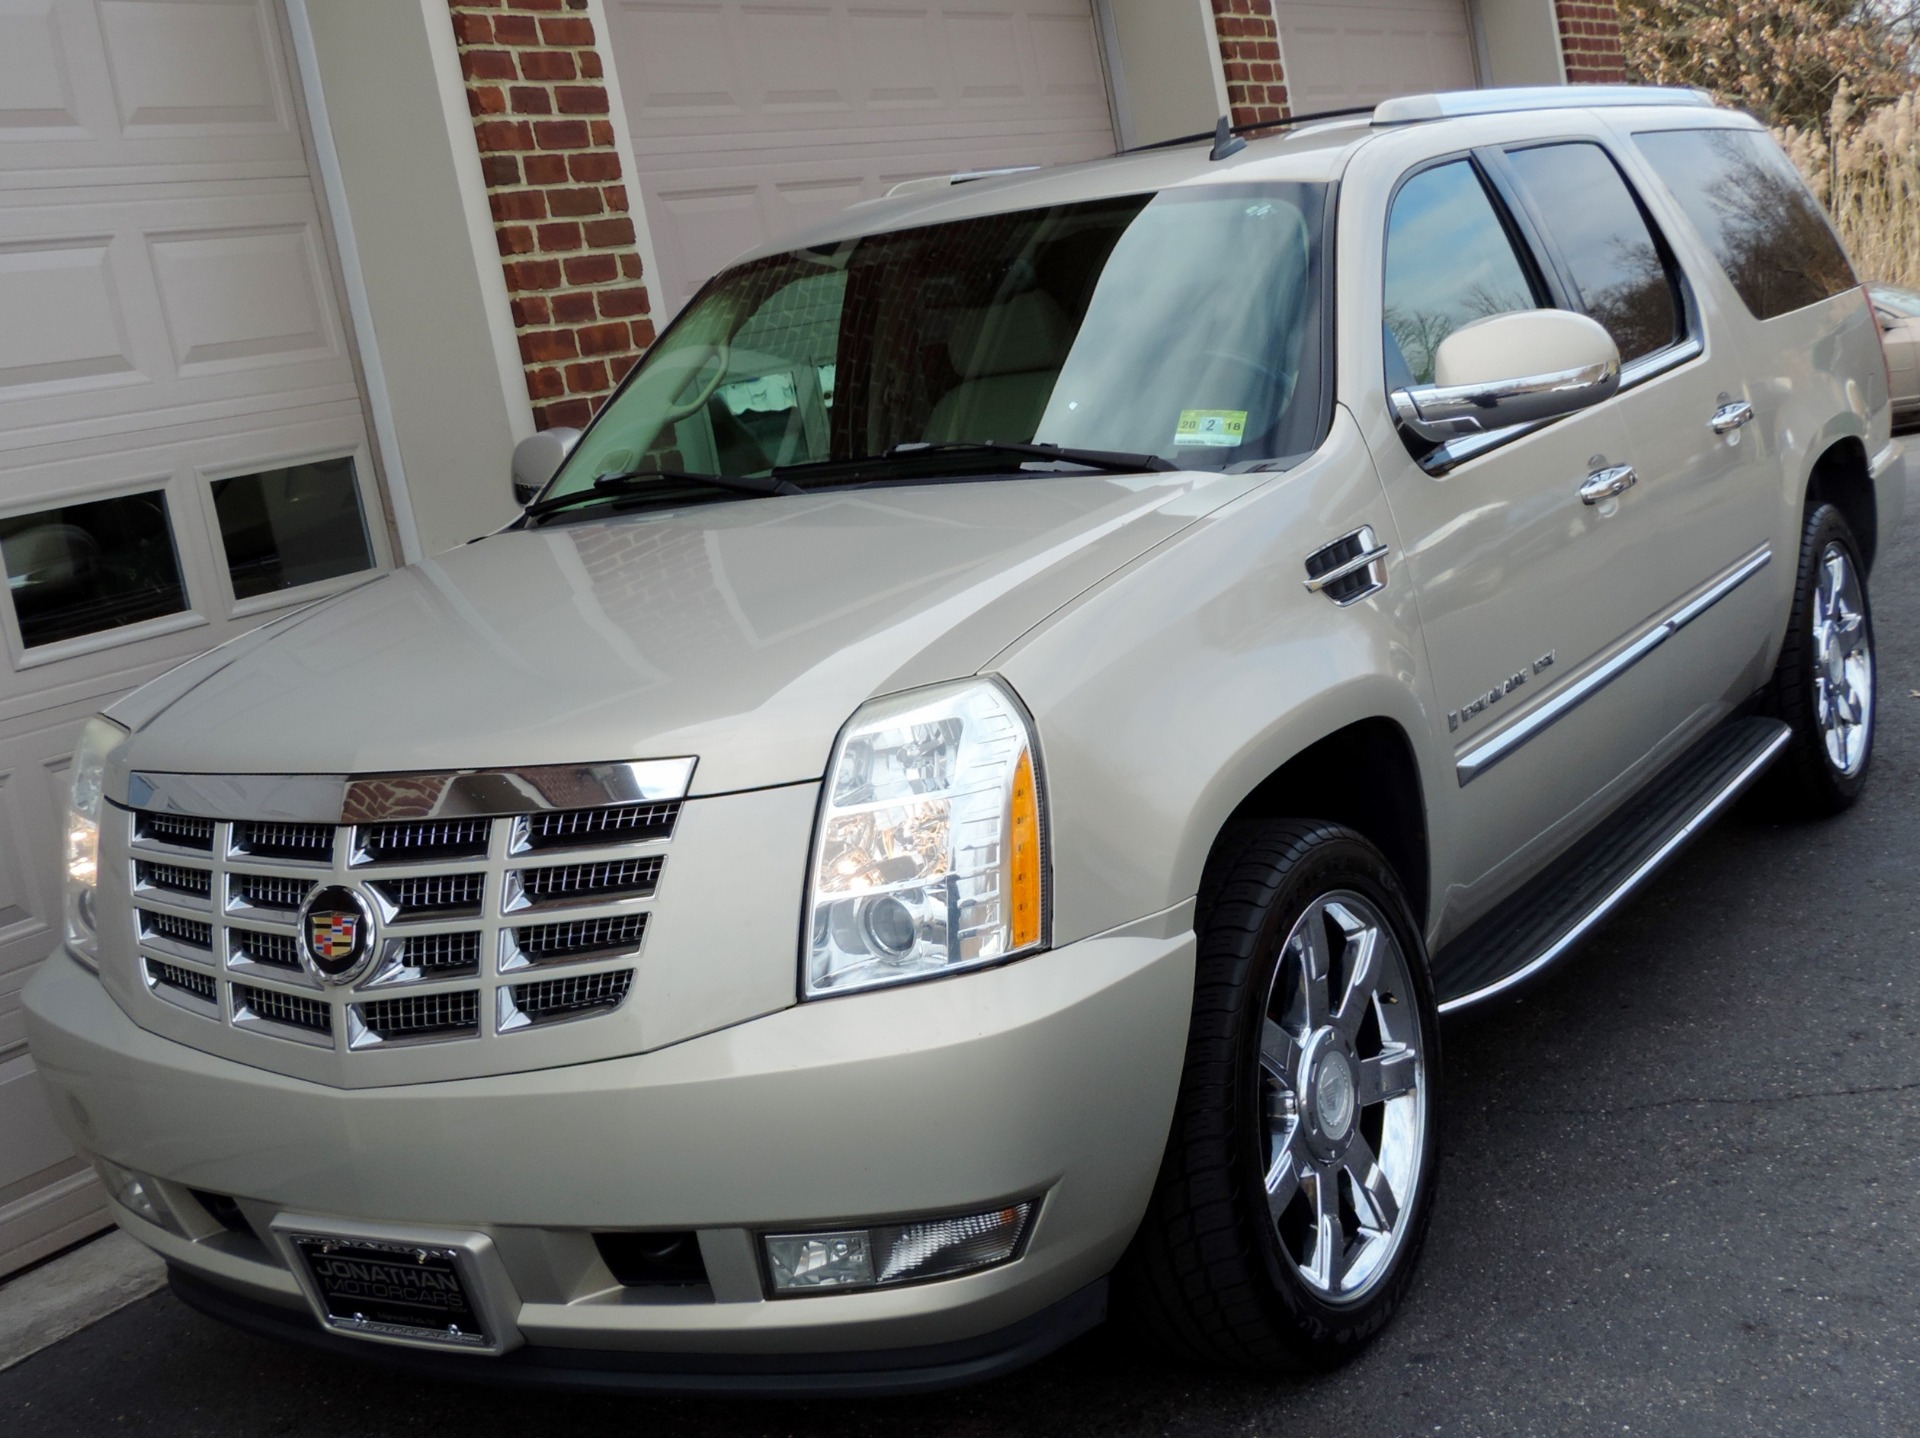 2007 cadillac escalade esv stock 344110 for sale near edgewater park nj nj cadillac dealer. Black Bedroom Furniture Sets. Home Design Ideas